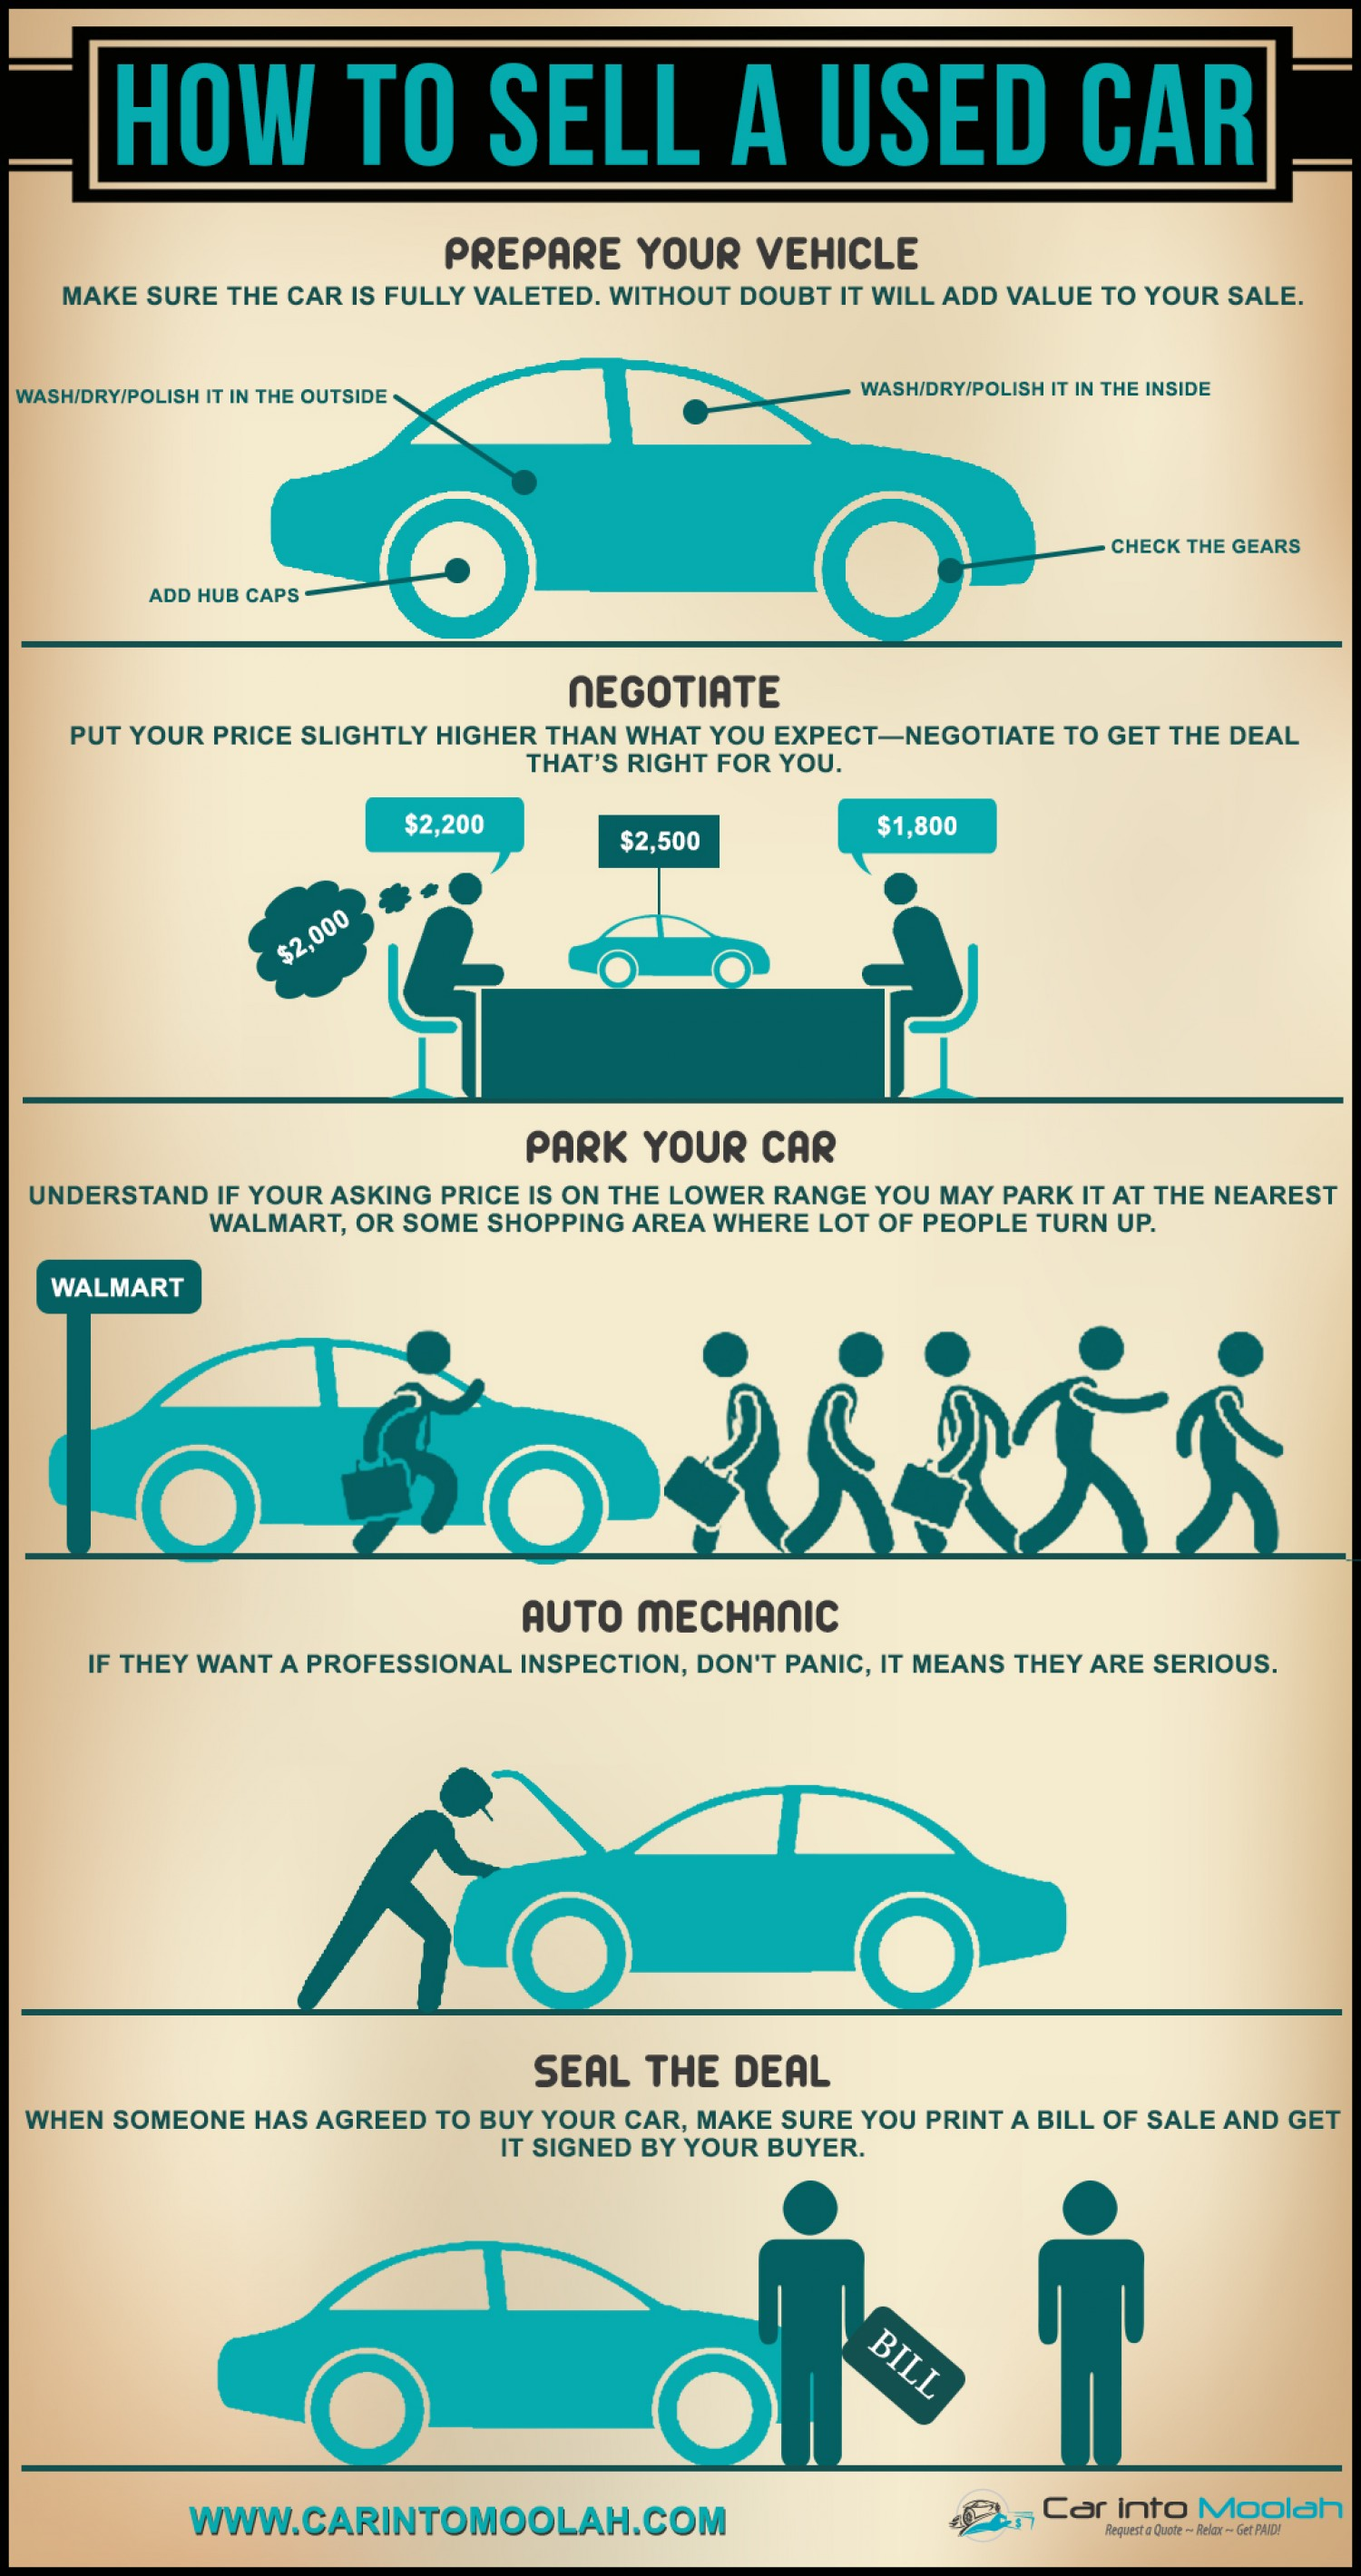 How to Negotiate A Used Car Unique How to Sell A Used Car